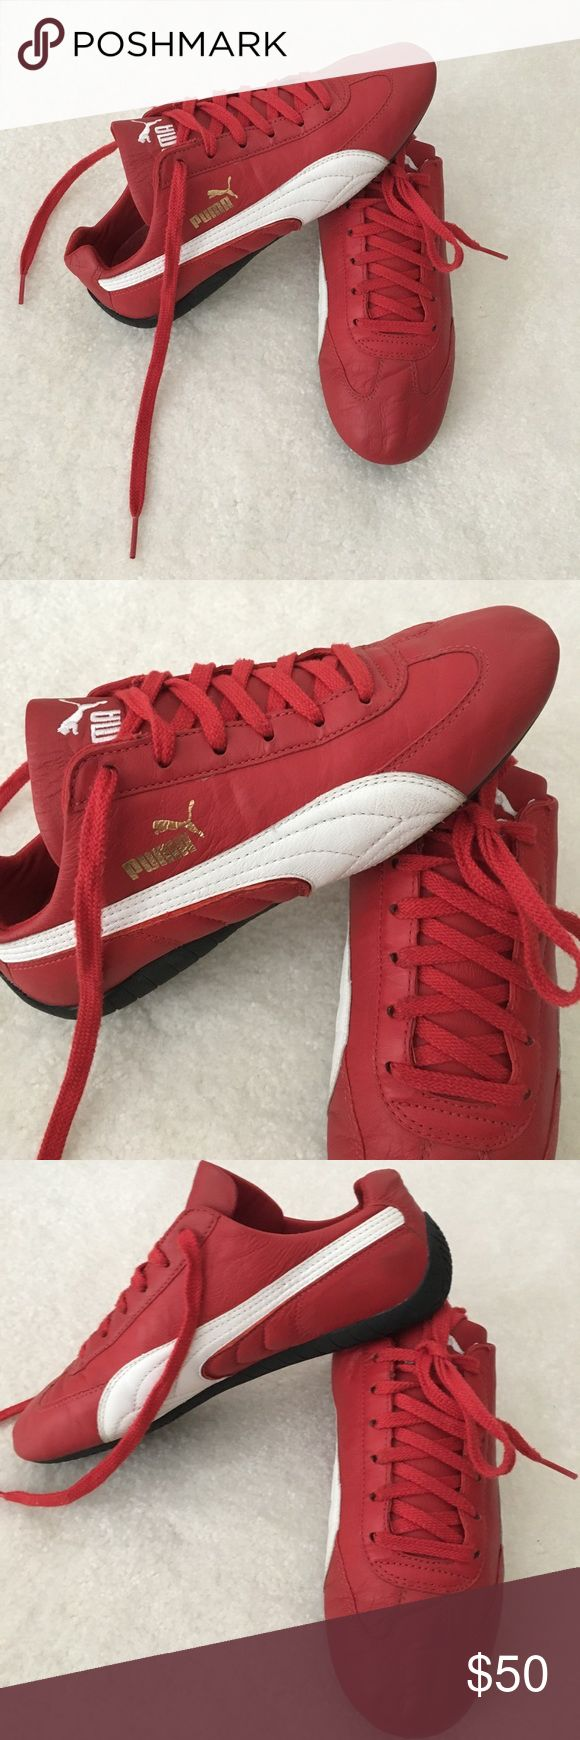 Puma Red Leather Sneakers Price is firm! Classic Puma Leather Sneakers. Fits more like a size 7. I'm between 7 - 7.5 and it fits me perfectly. Excellent condition! Puma Shoes Sneakers